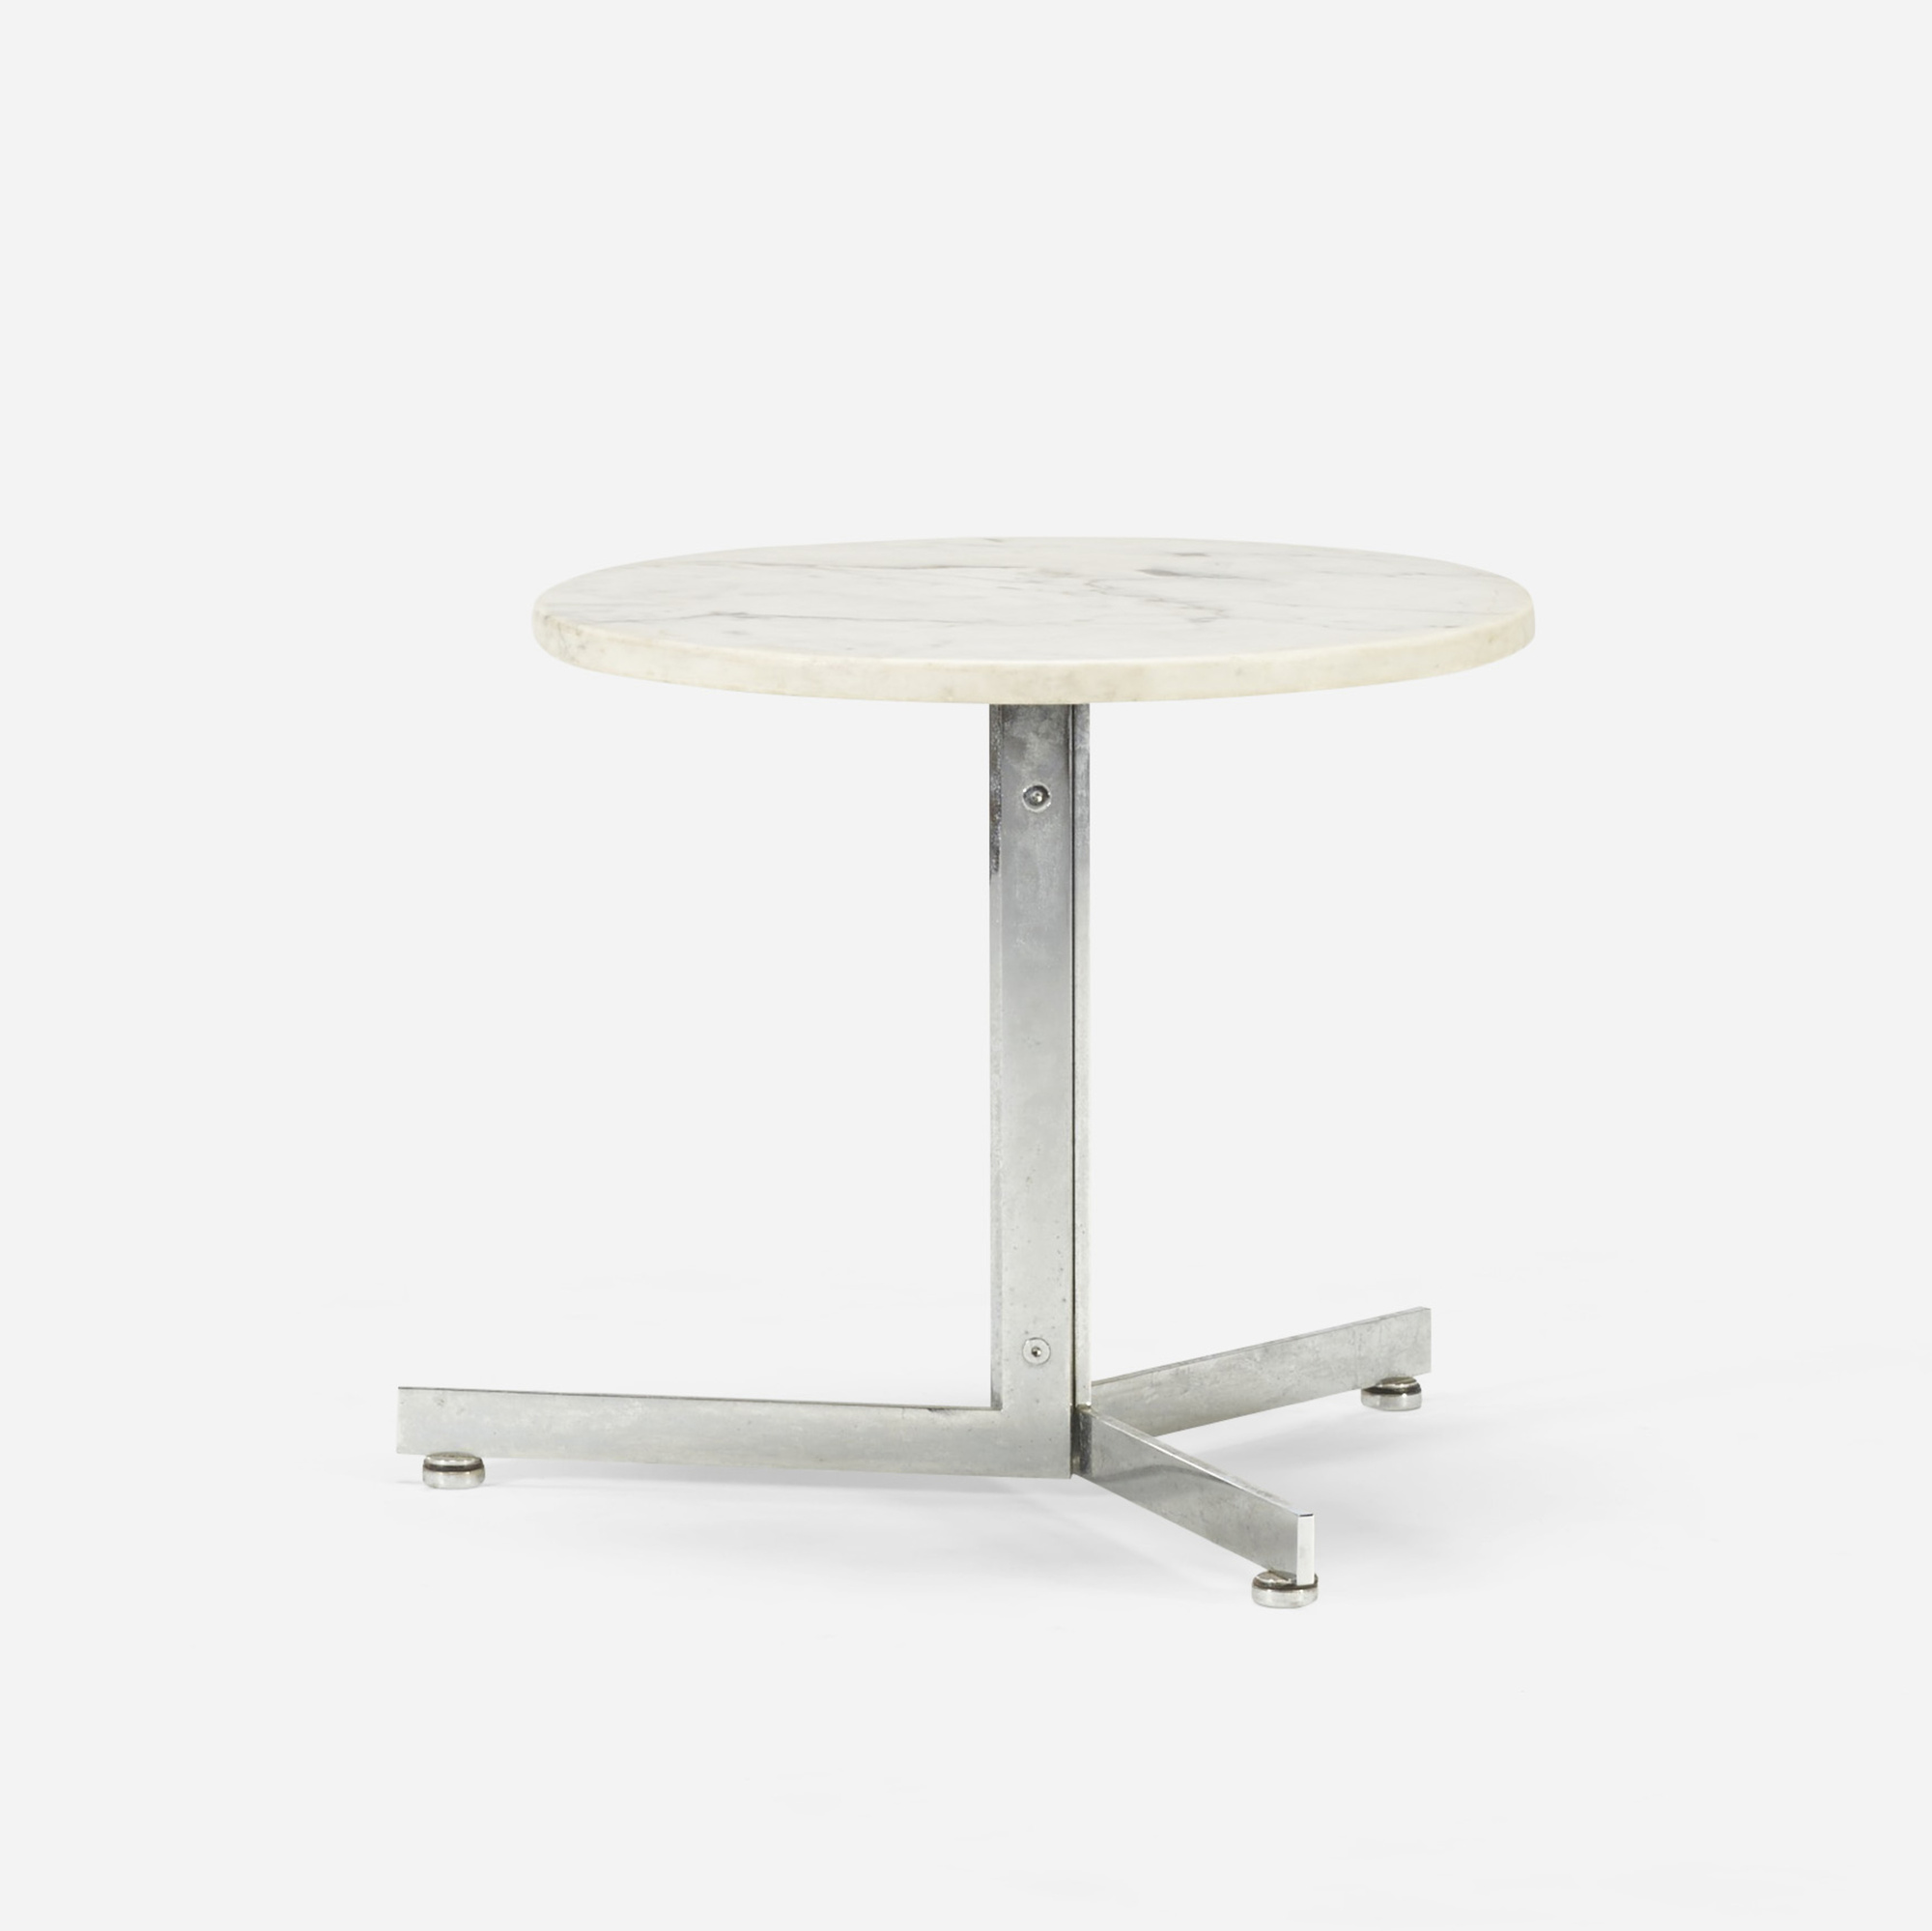 274: Hans Eichenberger / occasional table (1 of 2)